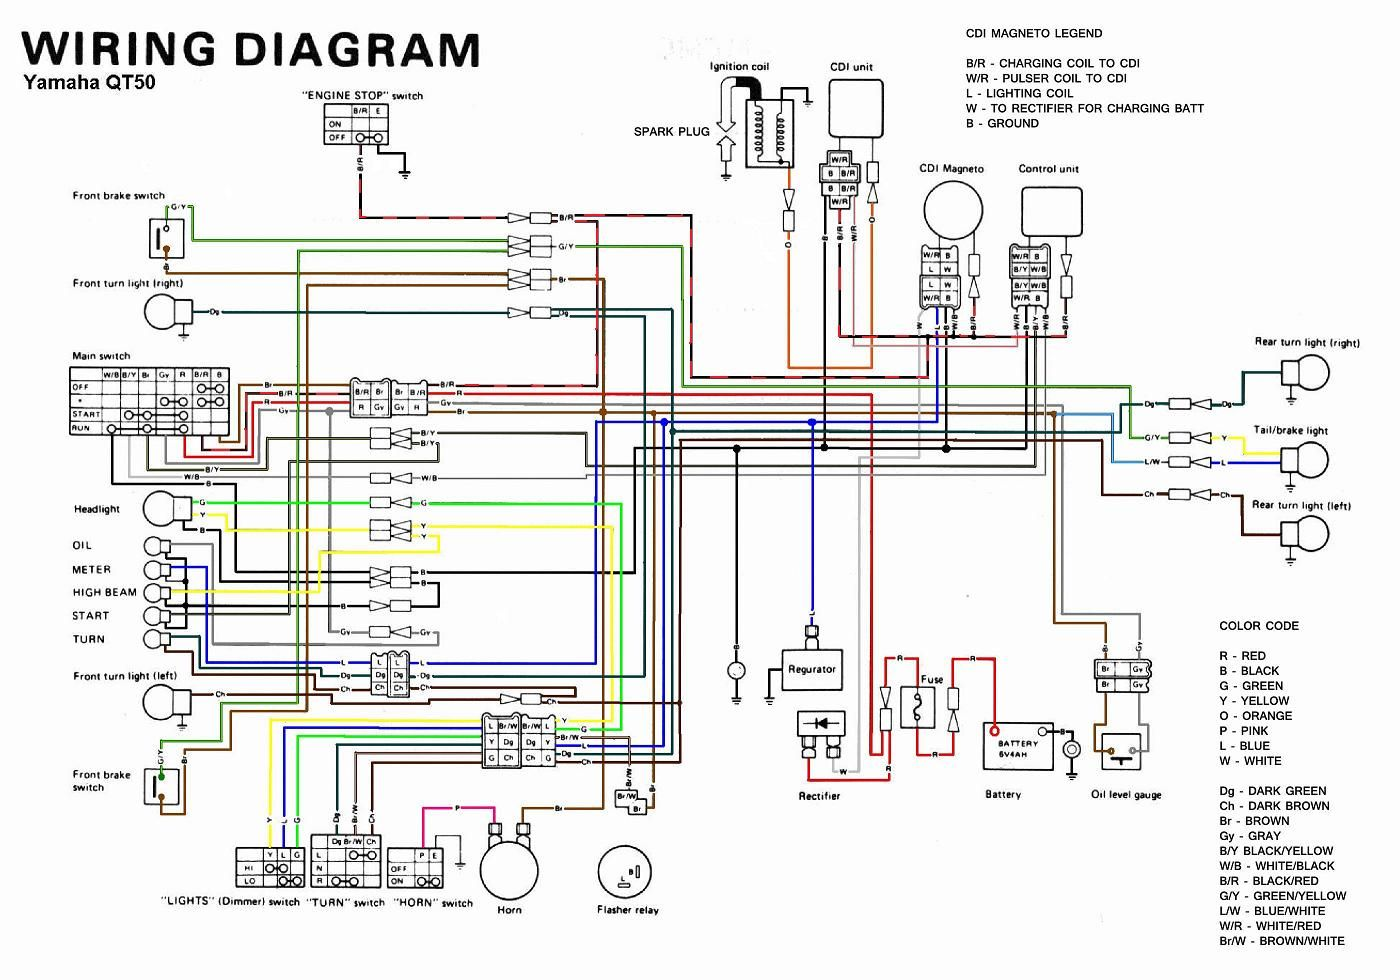 1980 Xs650 Cdi Wiring Diagram | Wiring Diagrams on